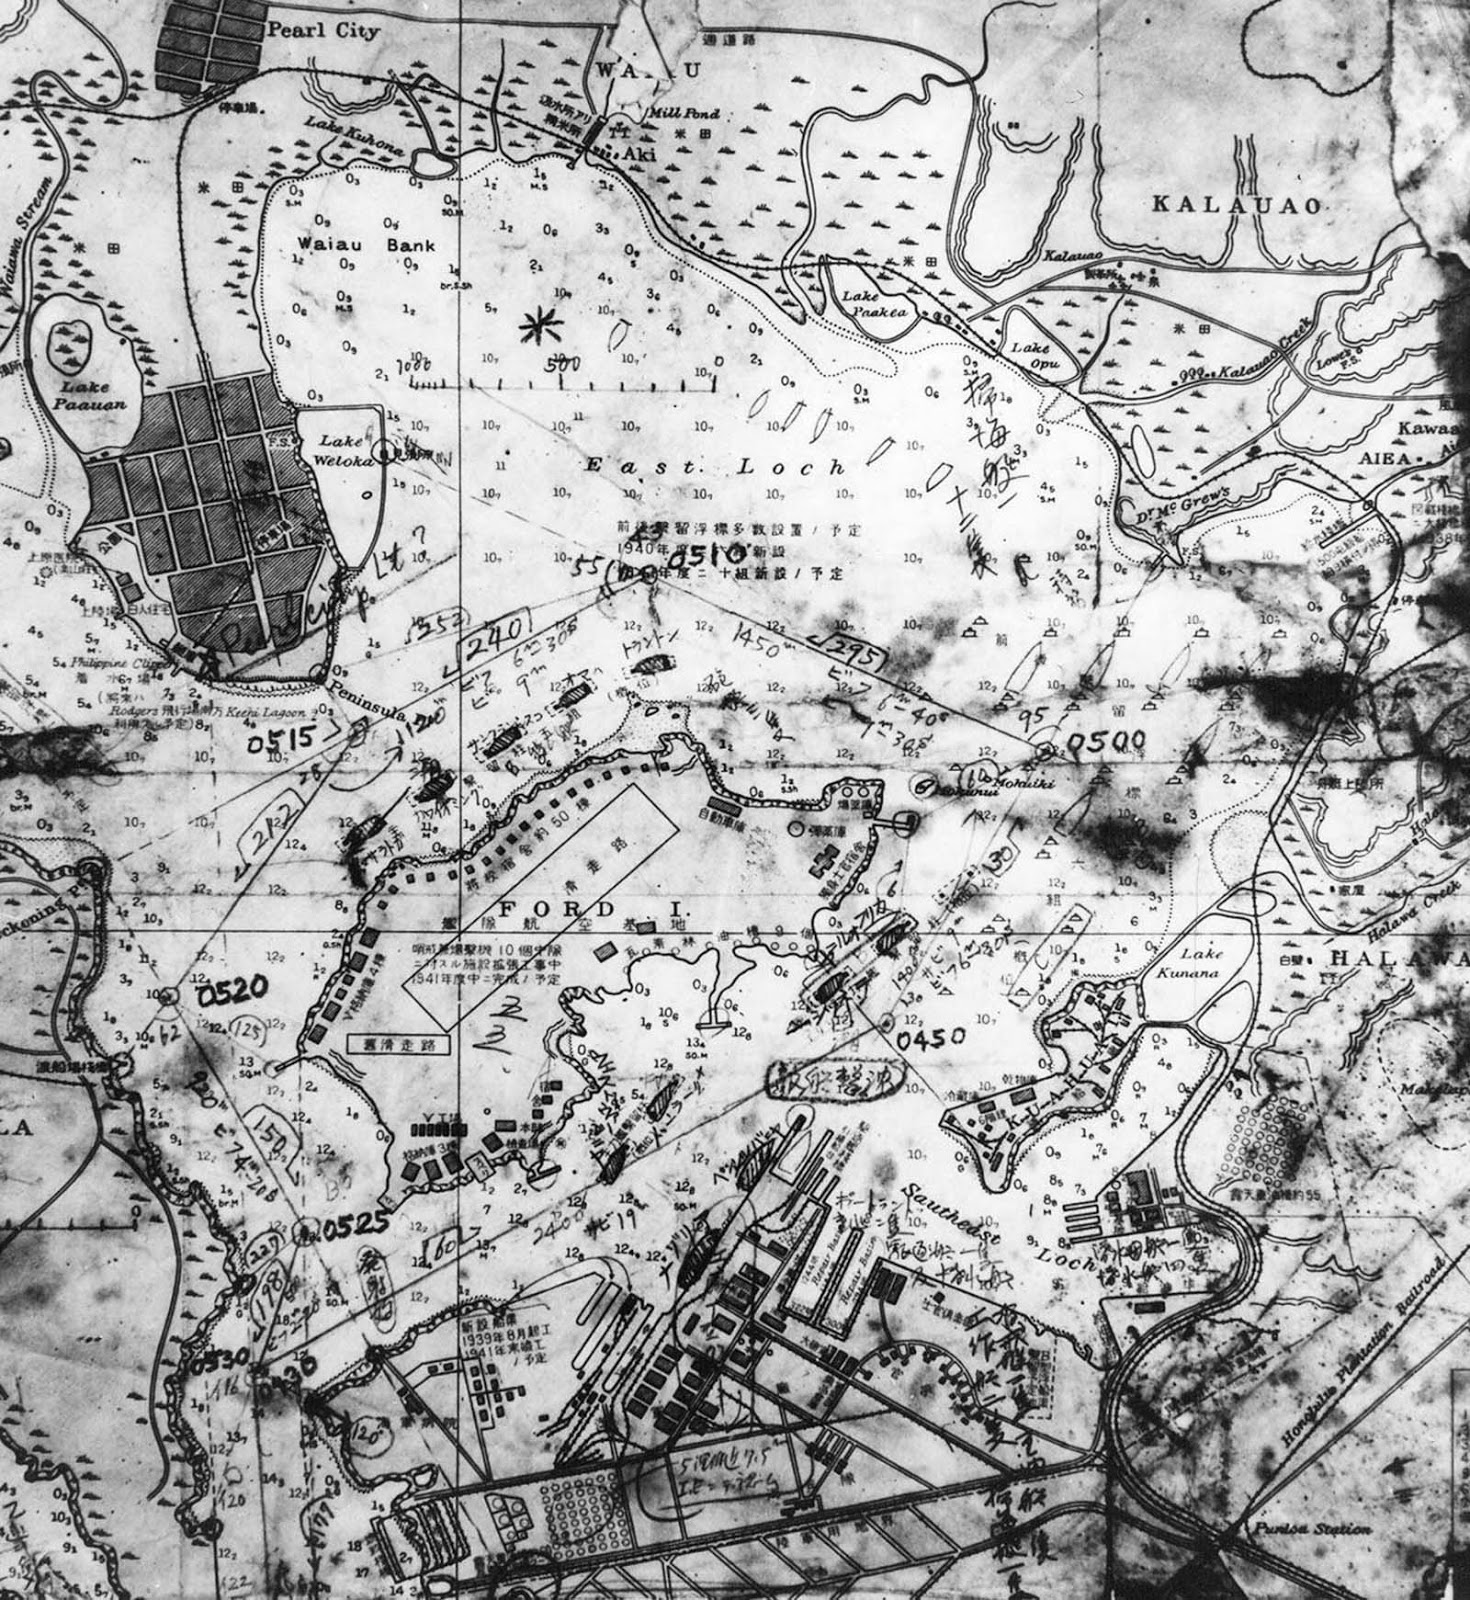 A map of Pearl Harbor recovered from a captured Japanese midget submarine.